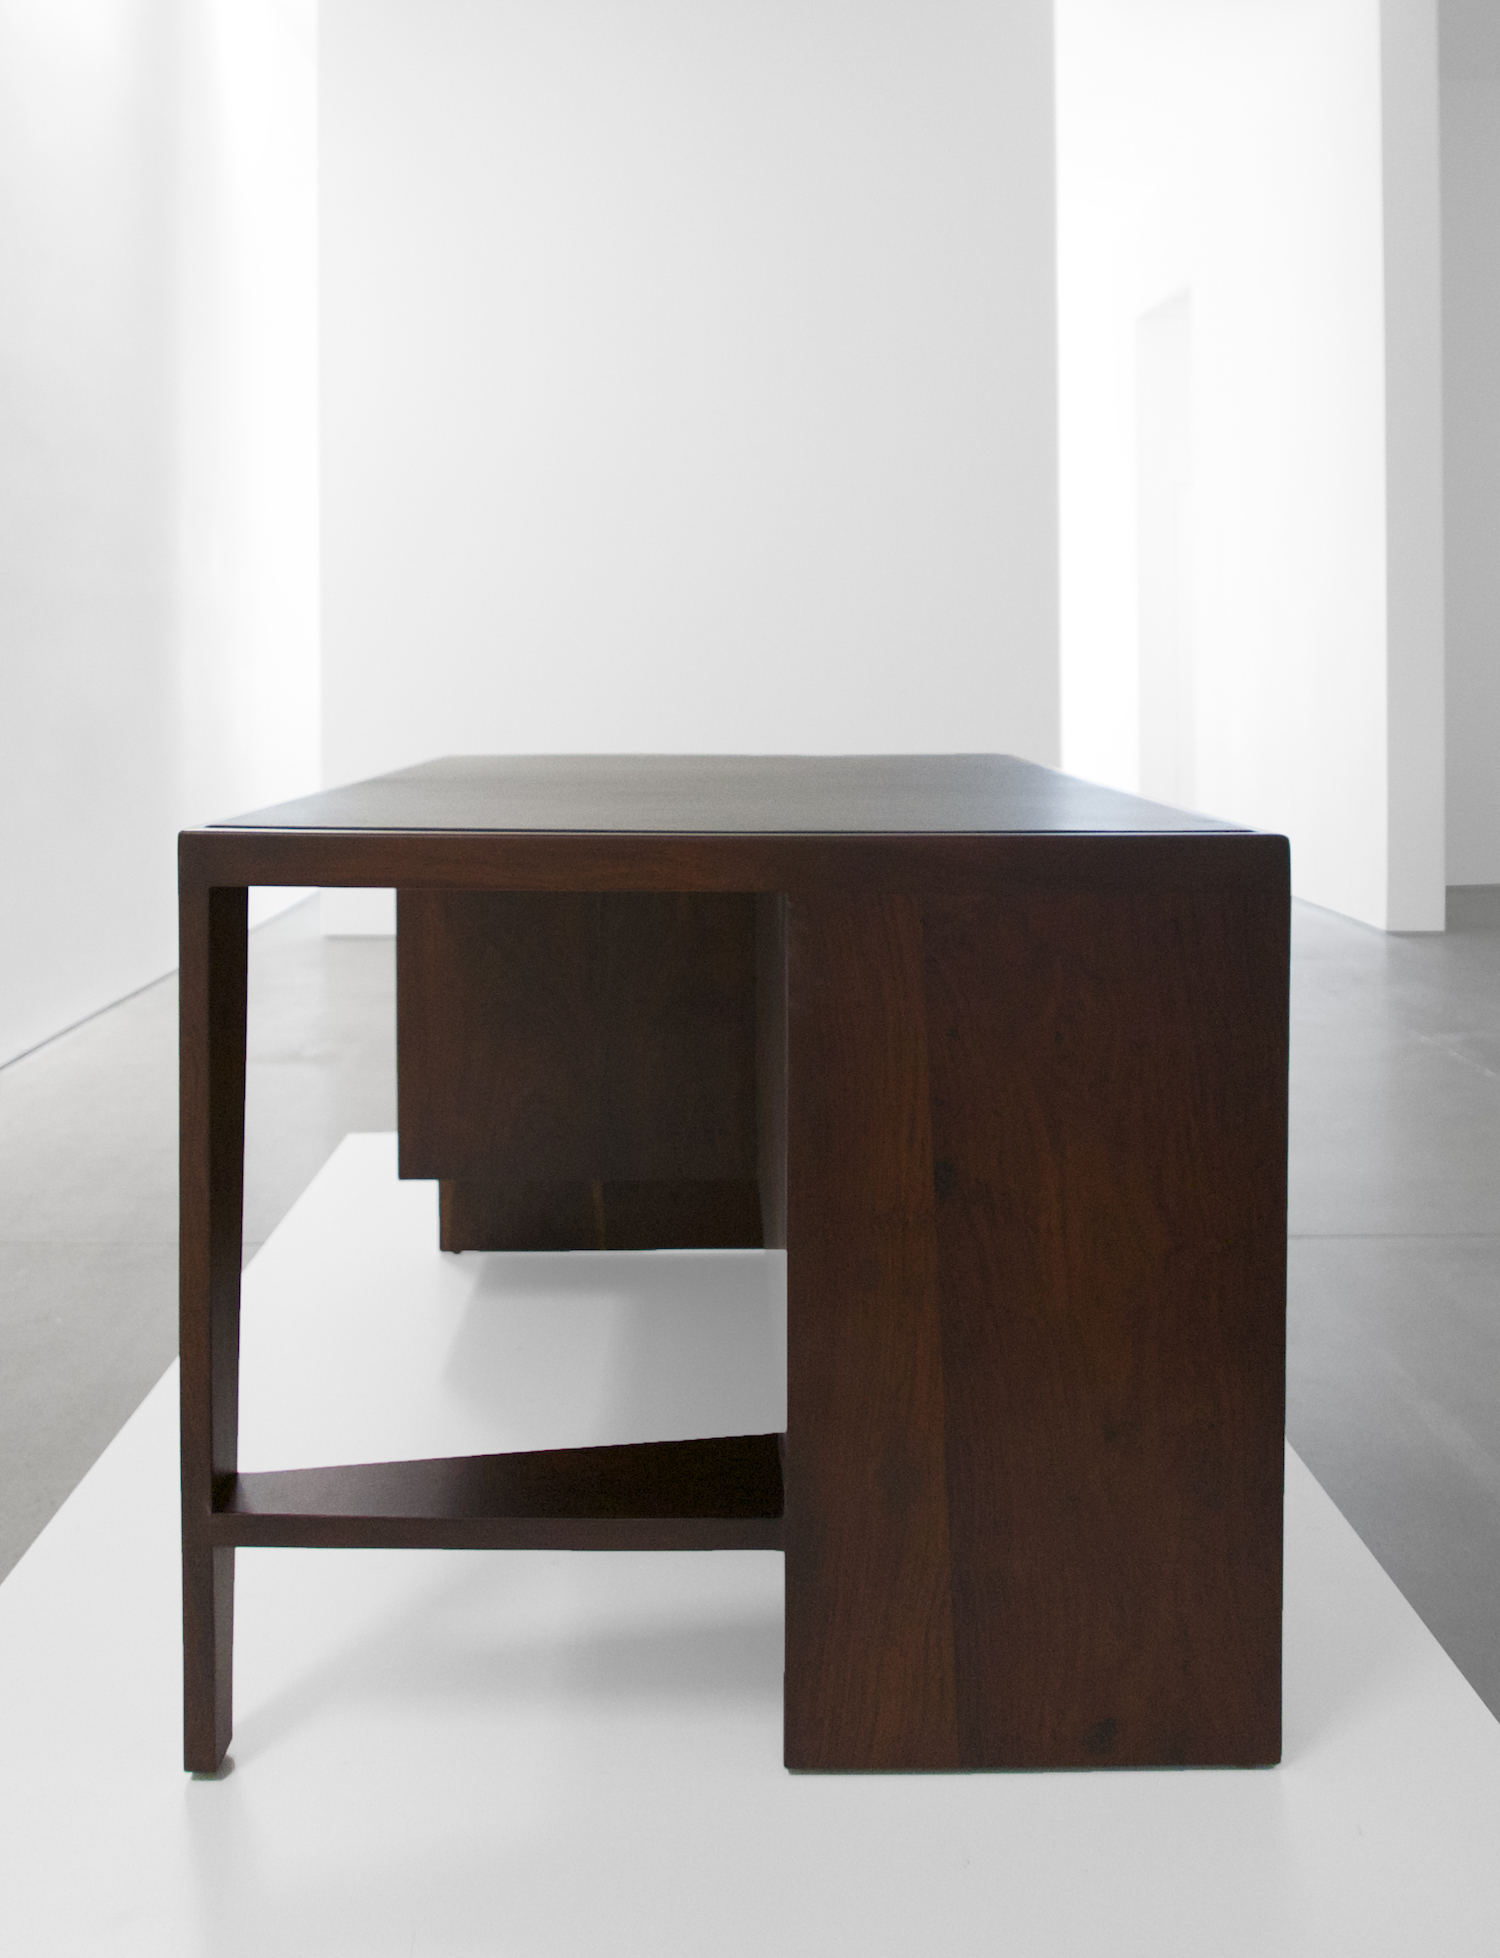 Jeanneret Indian Rosewood Desk from Chandigarh_3.jpg